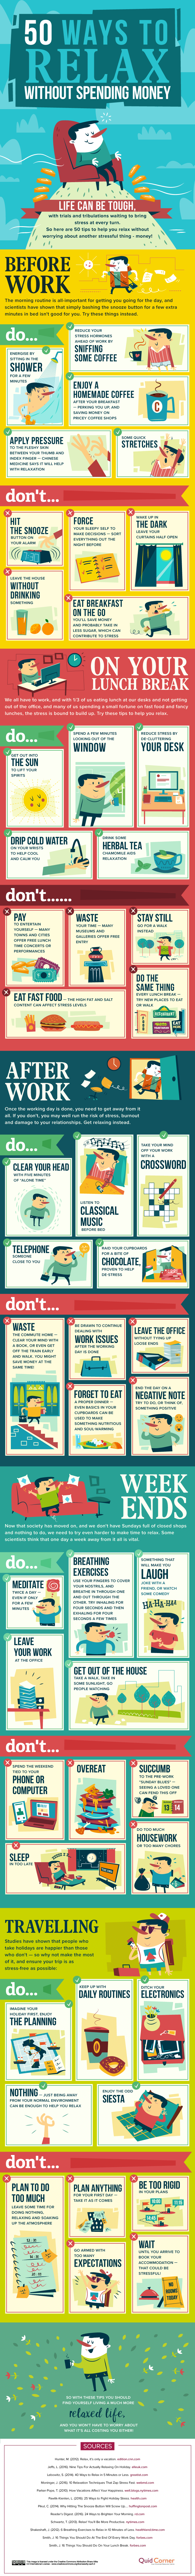 The Best Things in Life are Free: 50 Ways to Relax Without Spending Any Money - Infographic